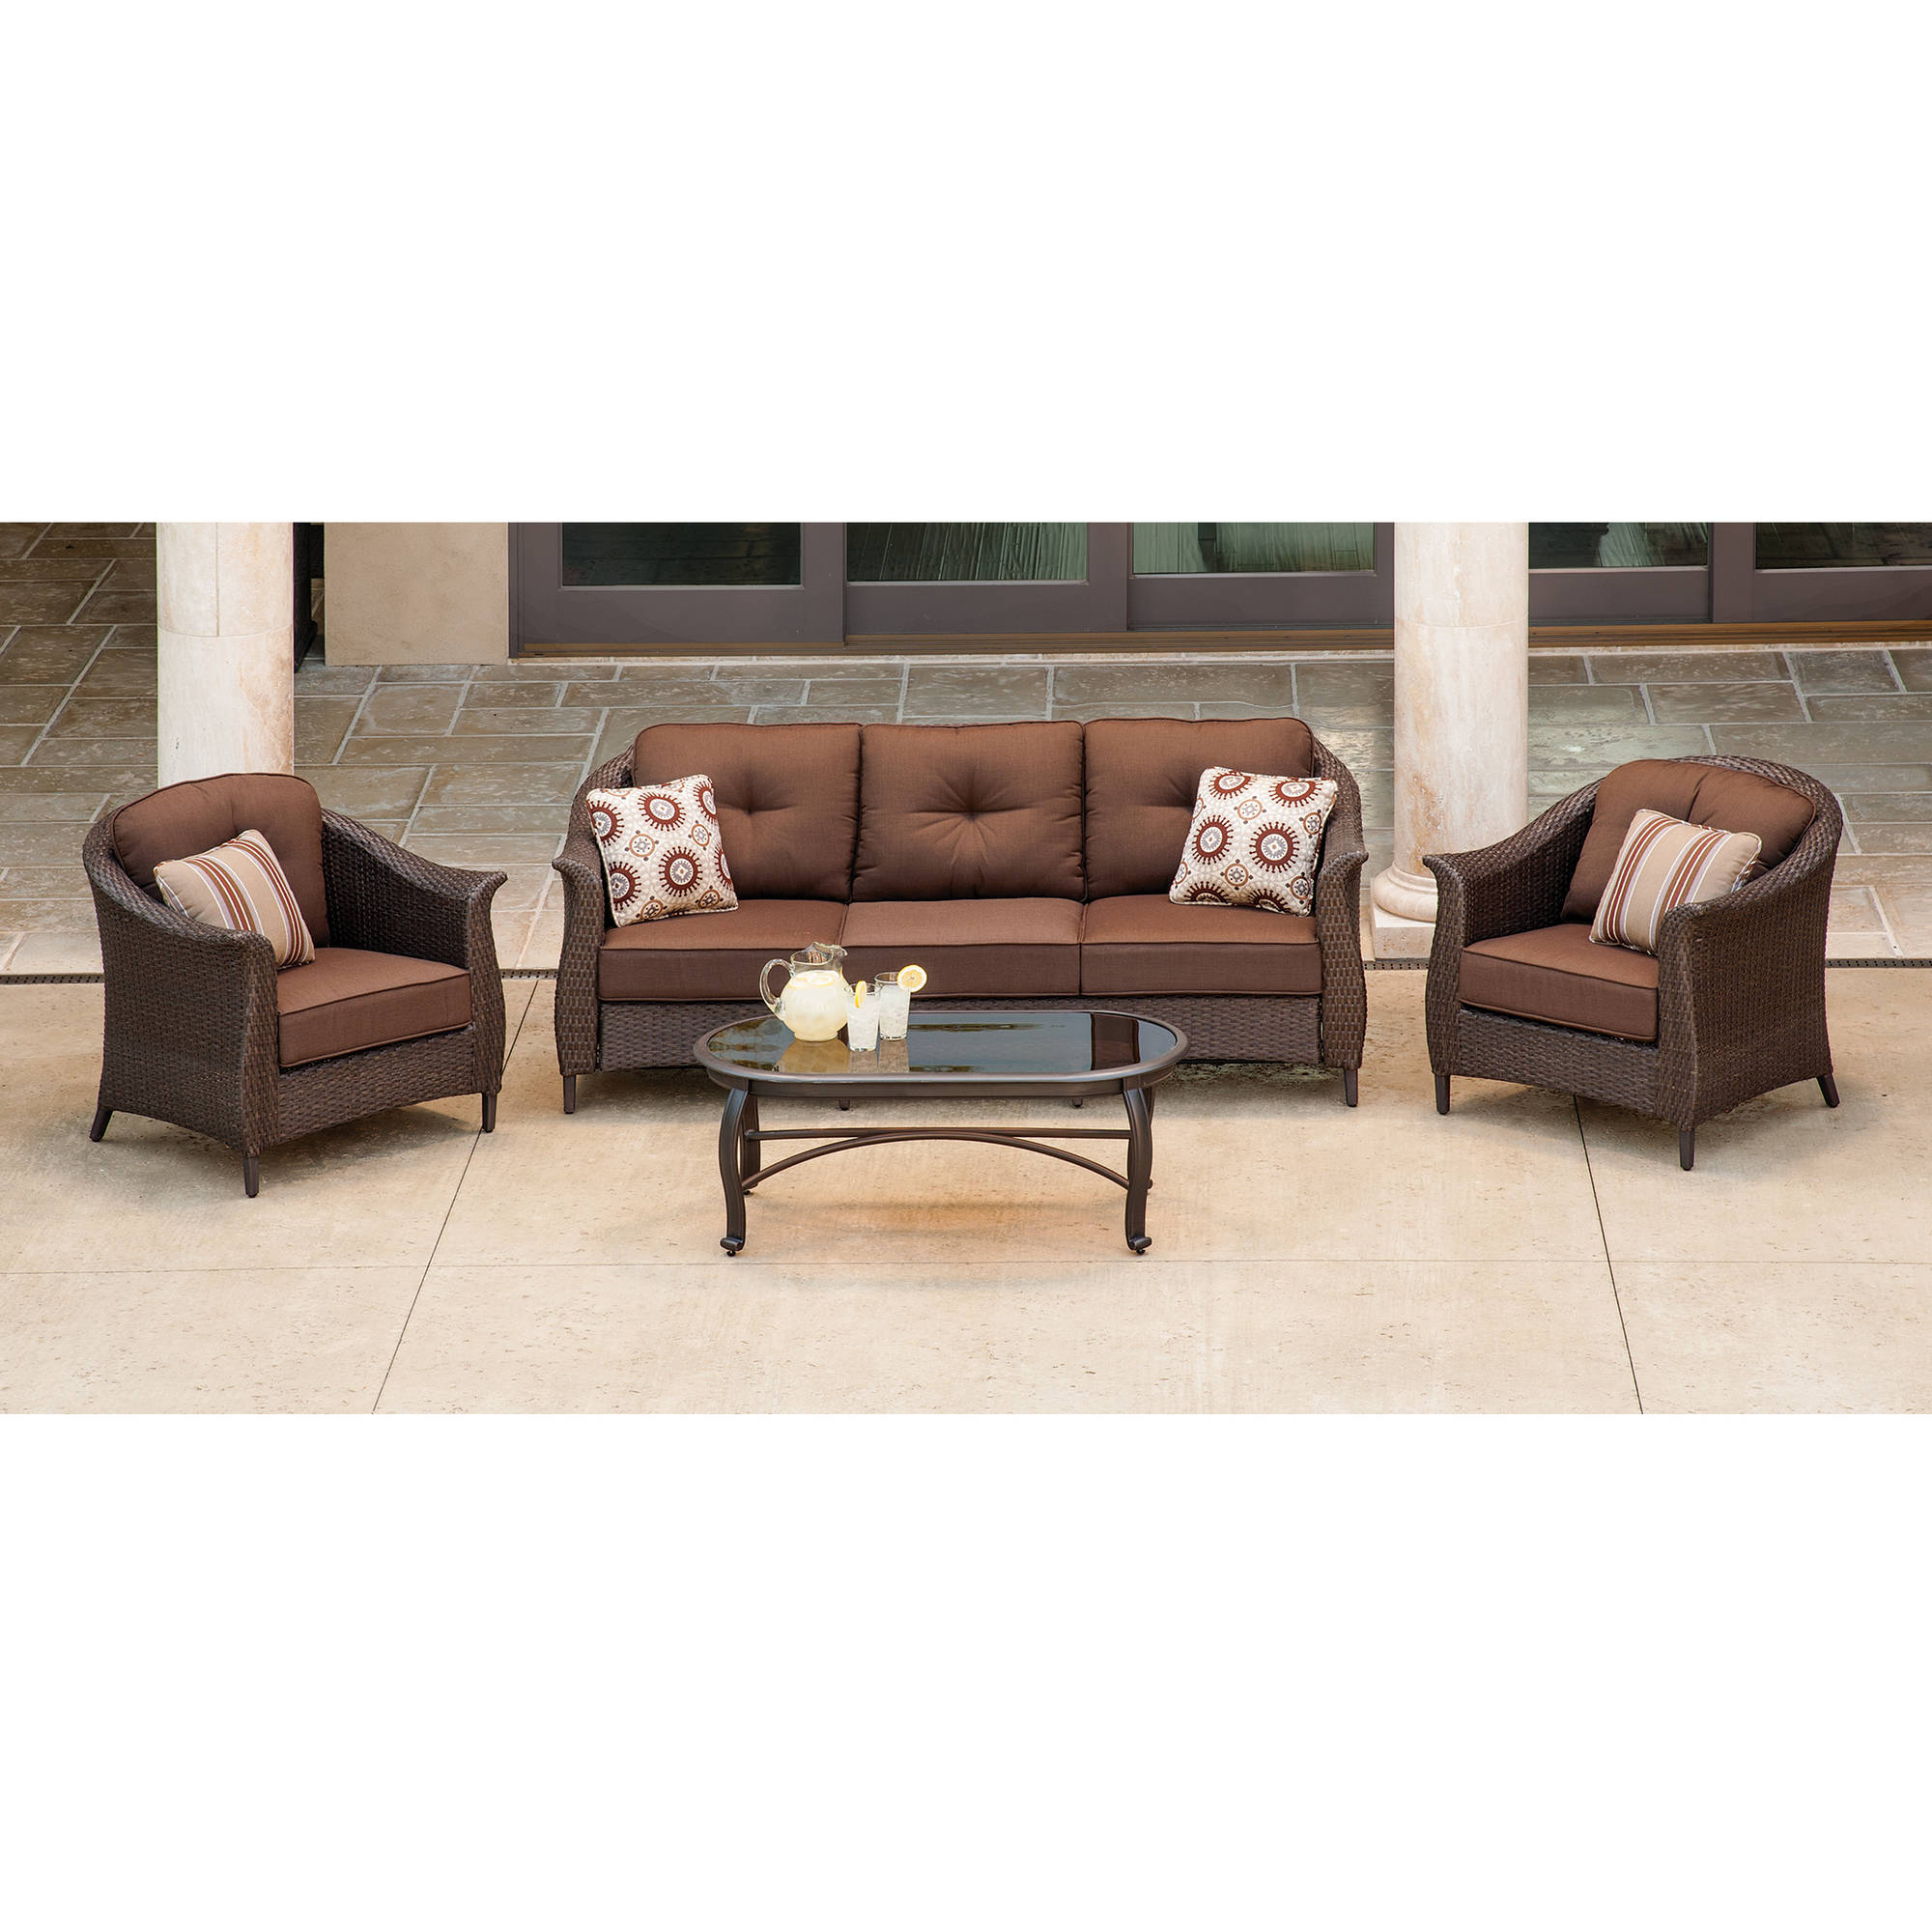 Hanover Outdoor Furniture Gramercy 4-Piece Wicker Patio Seating Set, Brown